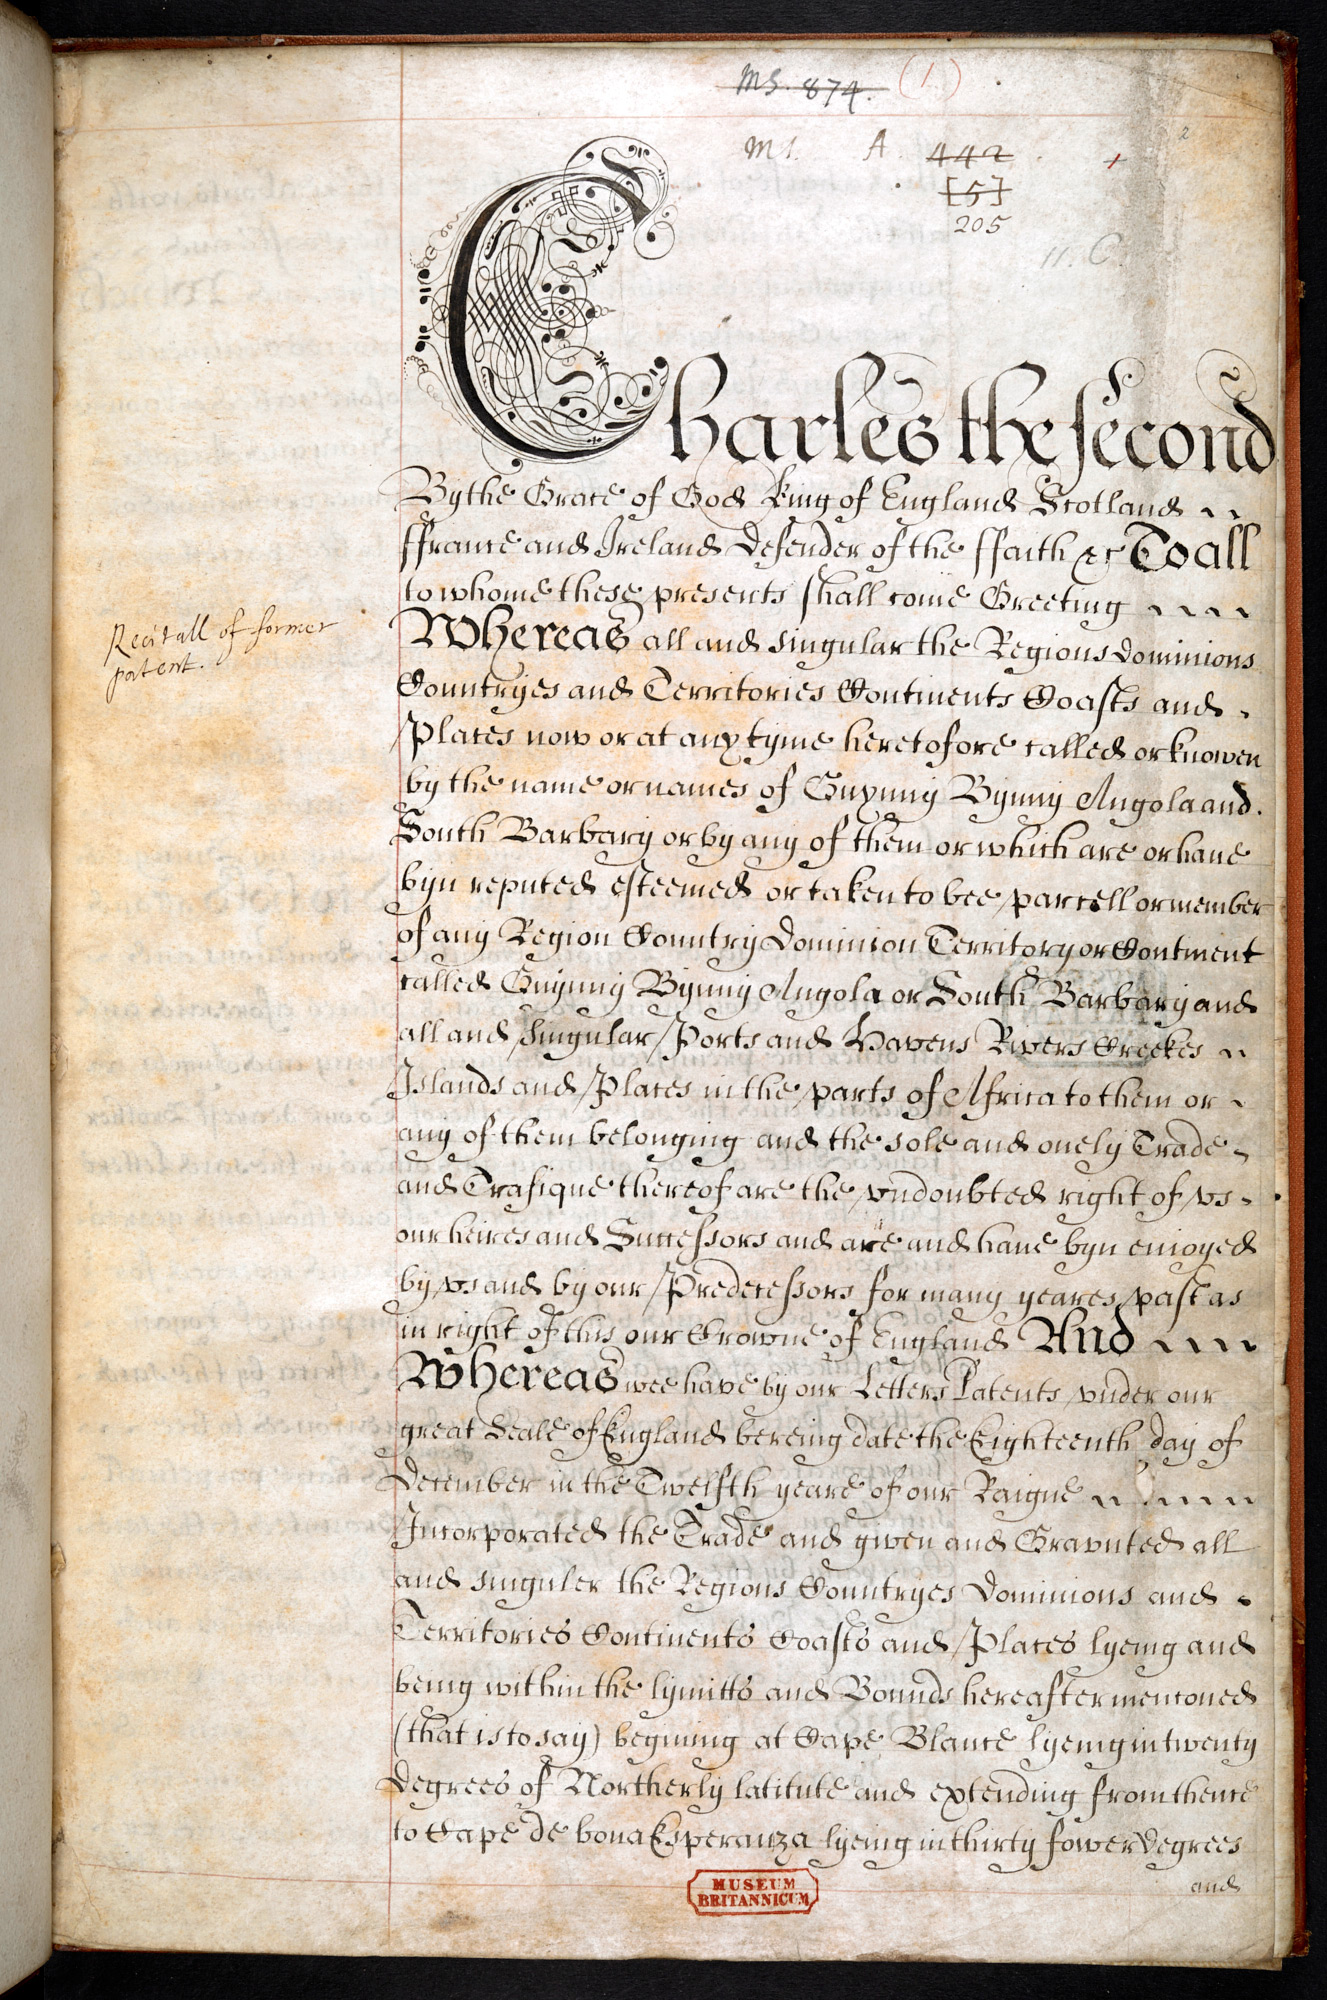 Charter Granted to the Company of Royal Adventurers of England etc